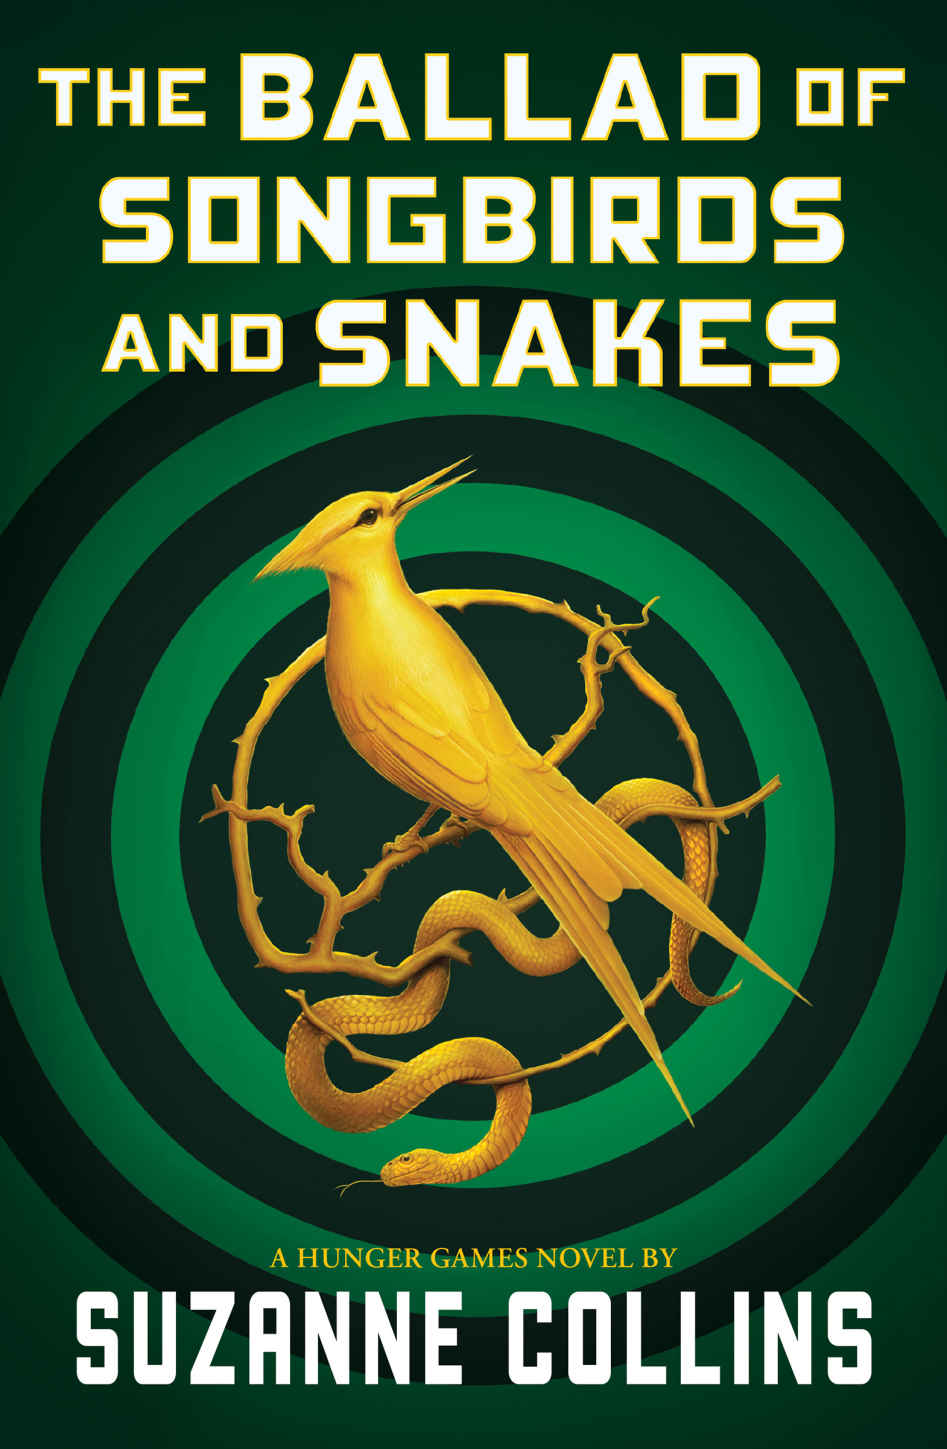 The Ballad of Songbirds and Snakes, a Hunger Games novel by Suzanne Collins